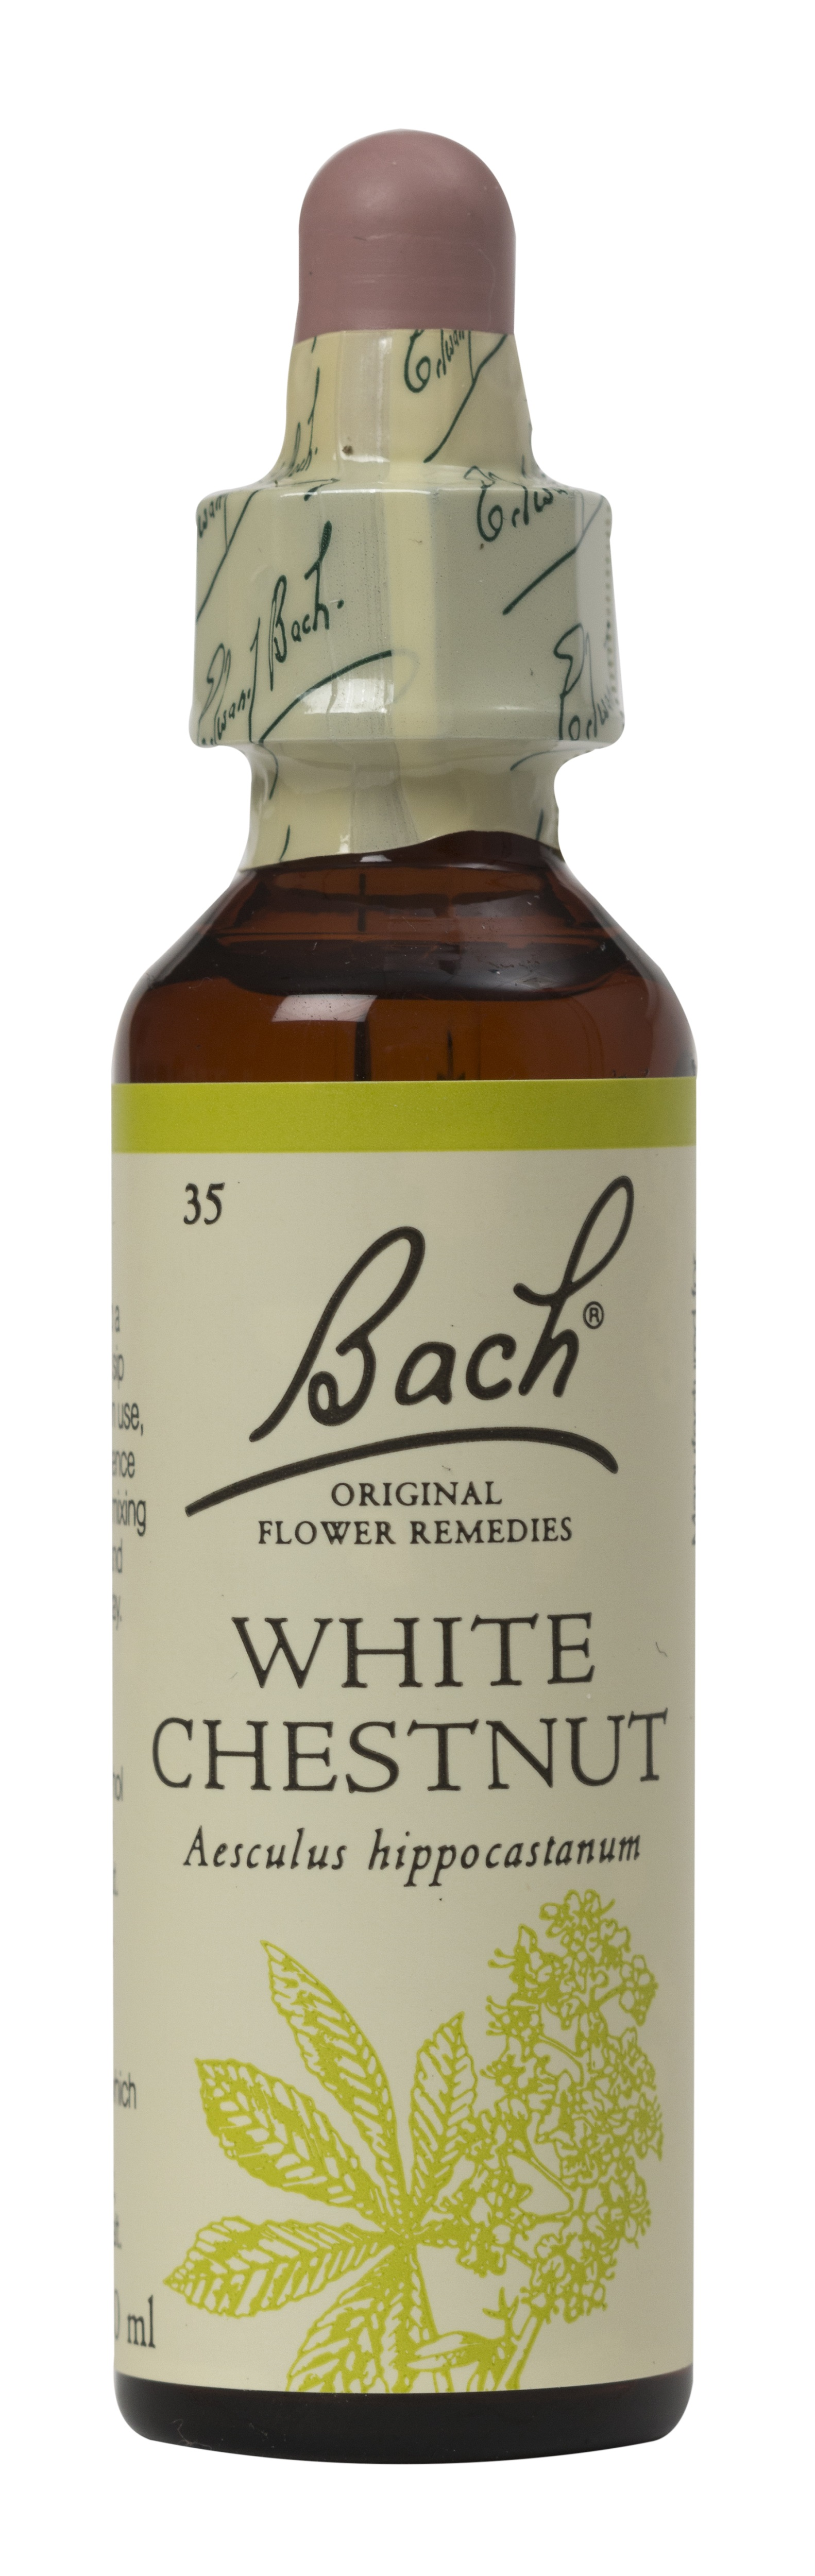 The Tree House Shop Bach White Chestnut Flower Remedy 20ml